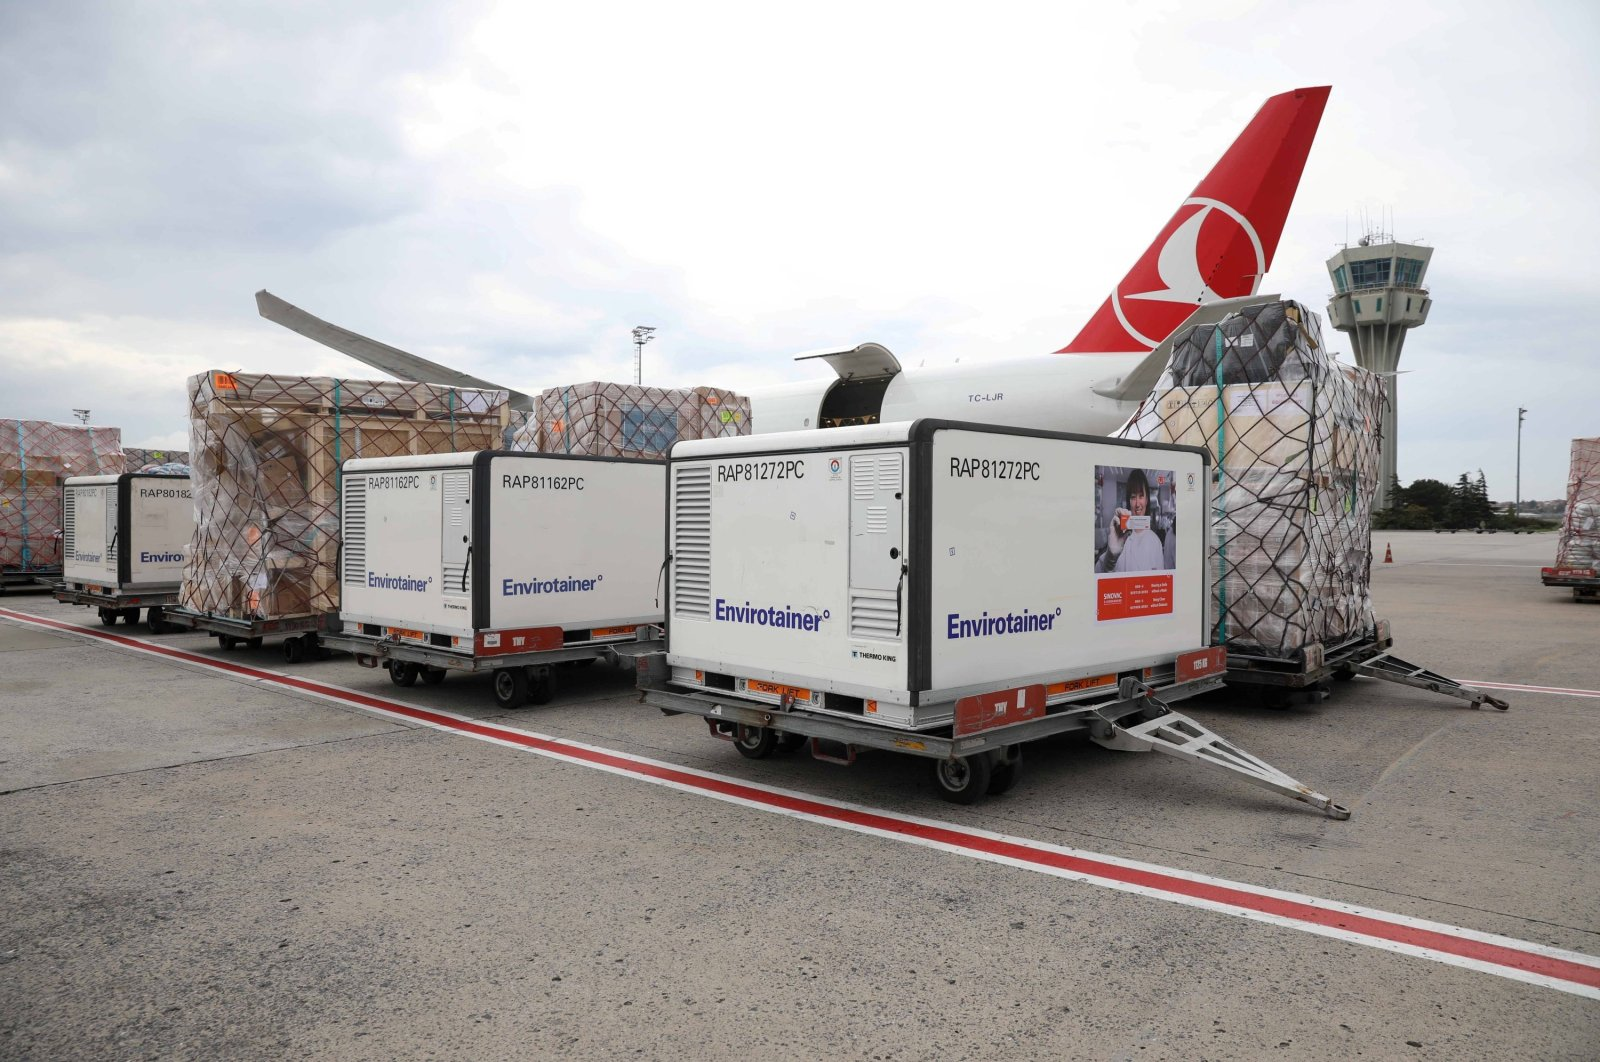 Active temperature control containers carrying China's Sinovac experimental COVID-19 vaccines are loaded onto a Turkish Cargo plane at Istanbul Airport before departing for Brazil, in Istanbul, Turkey, Nov. 18, 2020. (Photo by THY via Reuters )